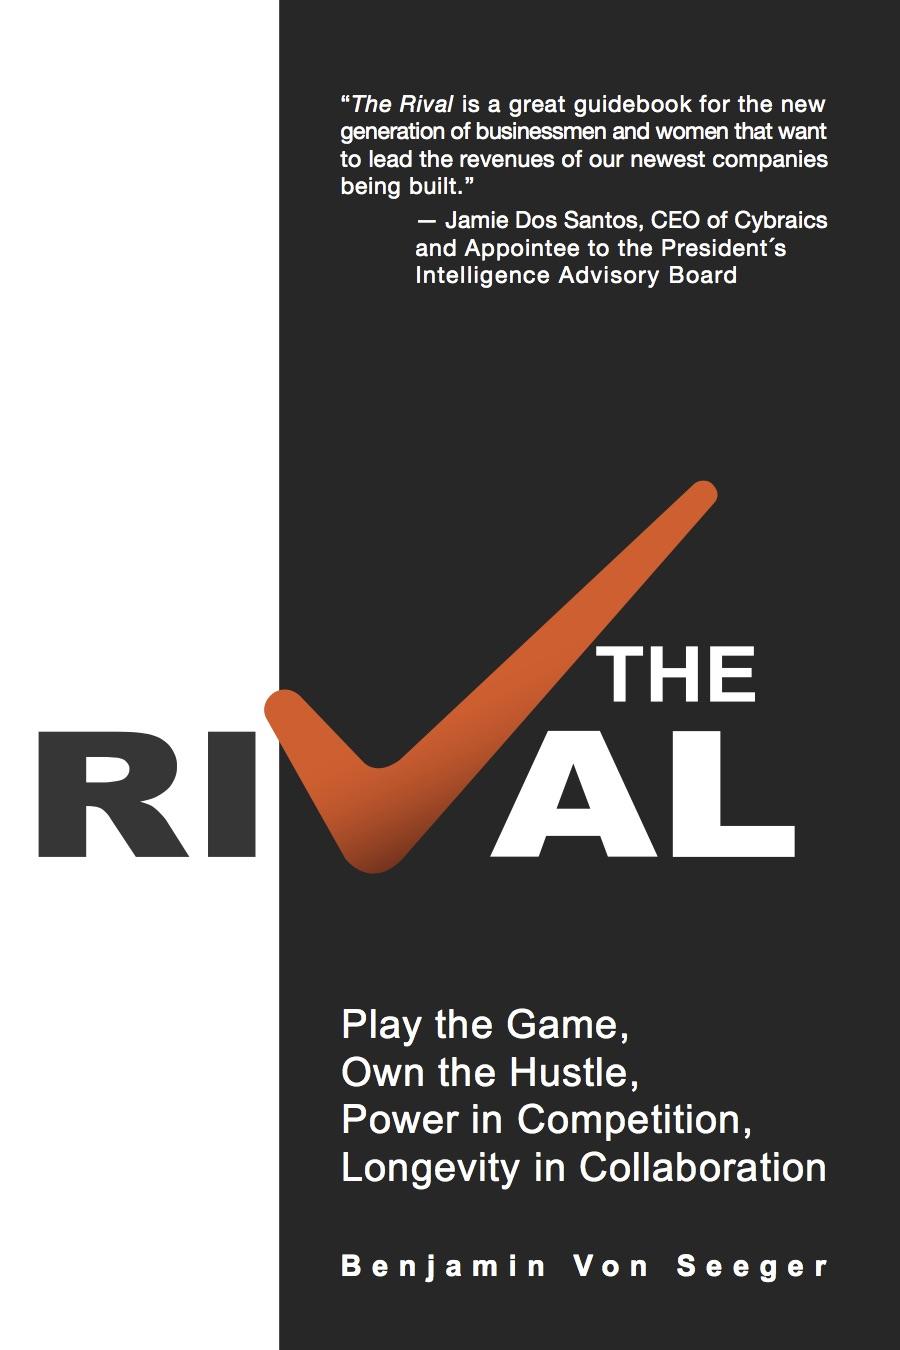 THE RIVAL Front Cover FINAL